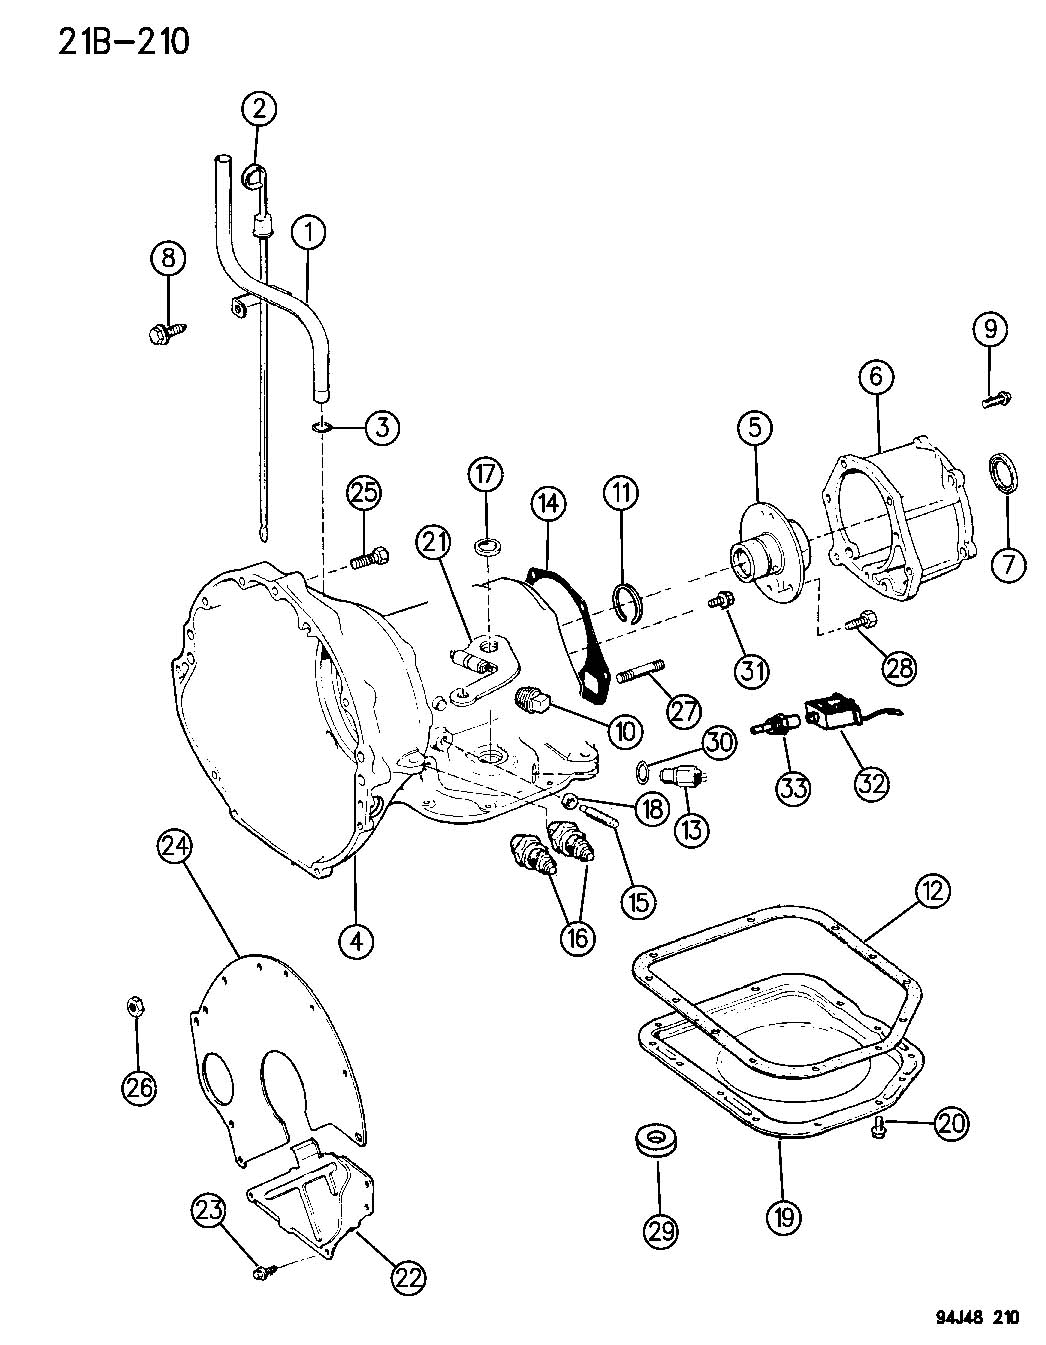 Bl img ford010 additionally 92 ford tempo engine diagram moreover 170575 moreover 2001 ford mustang p1285